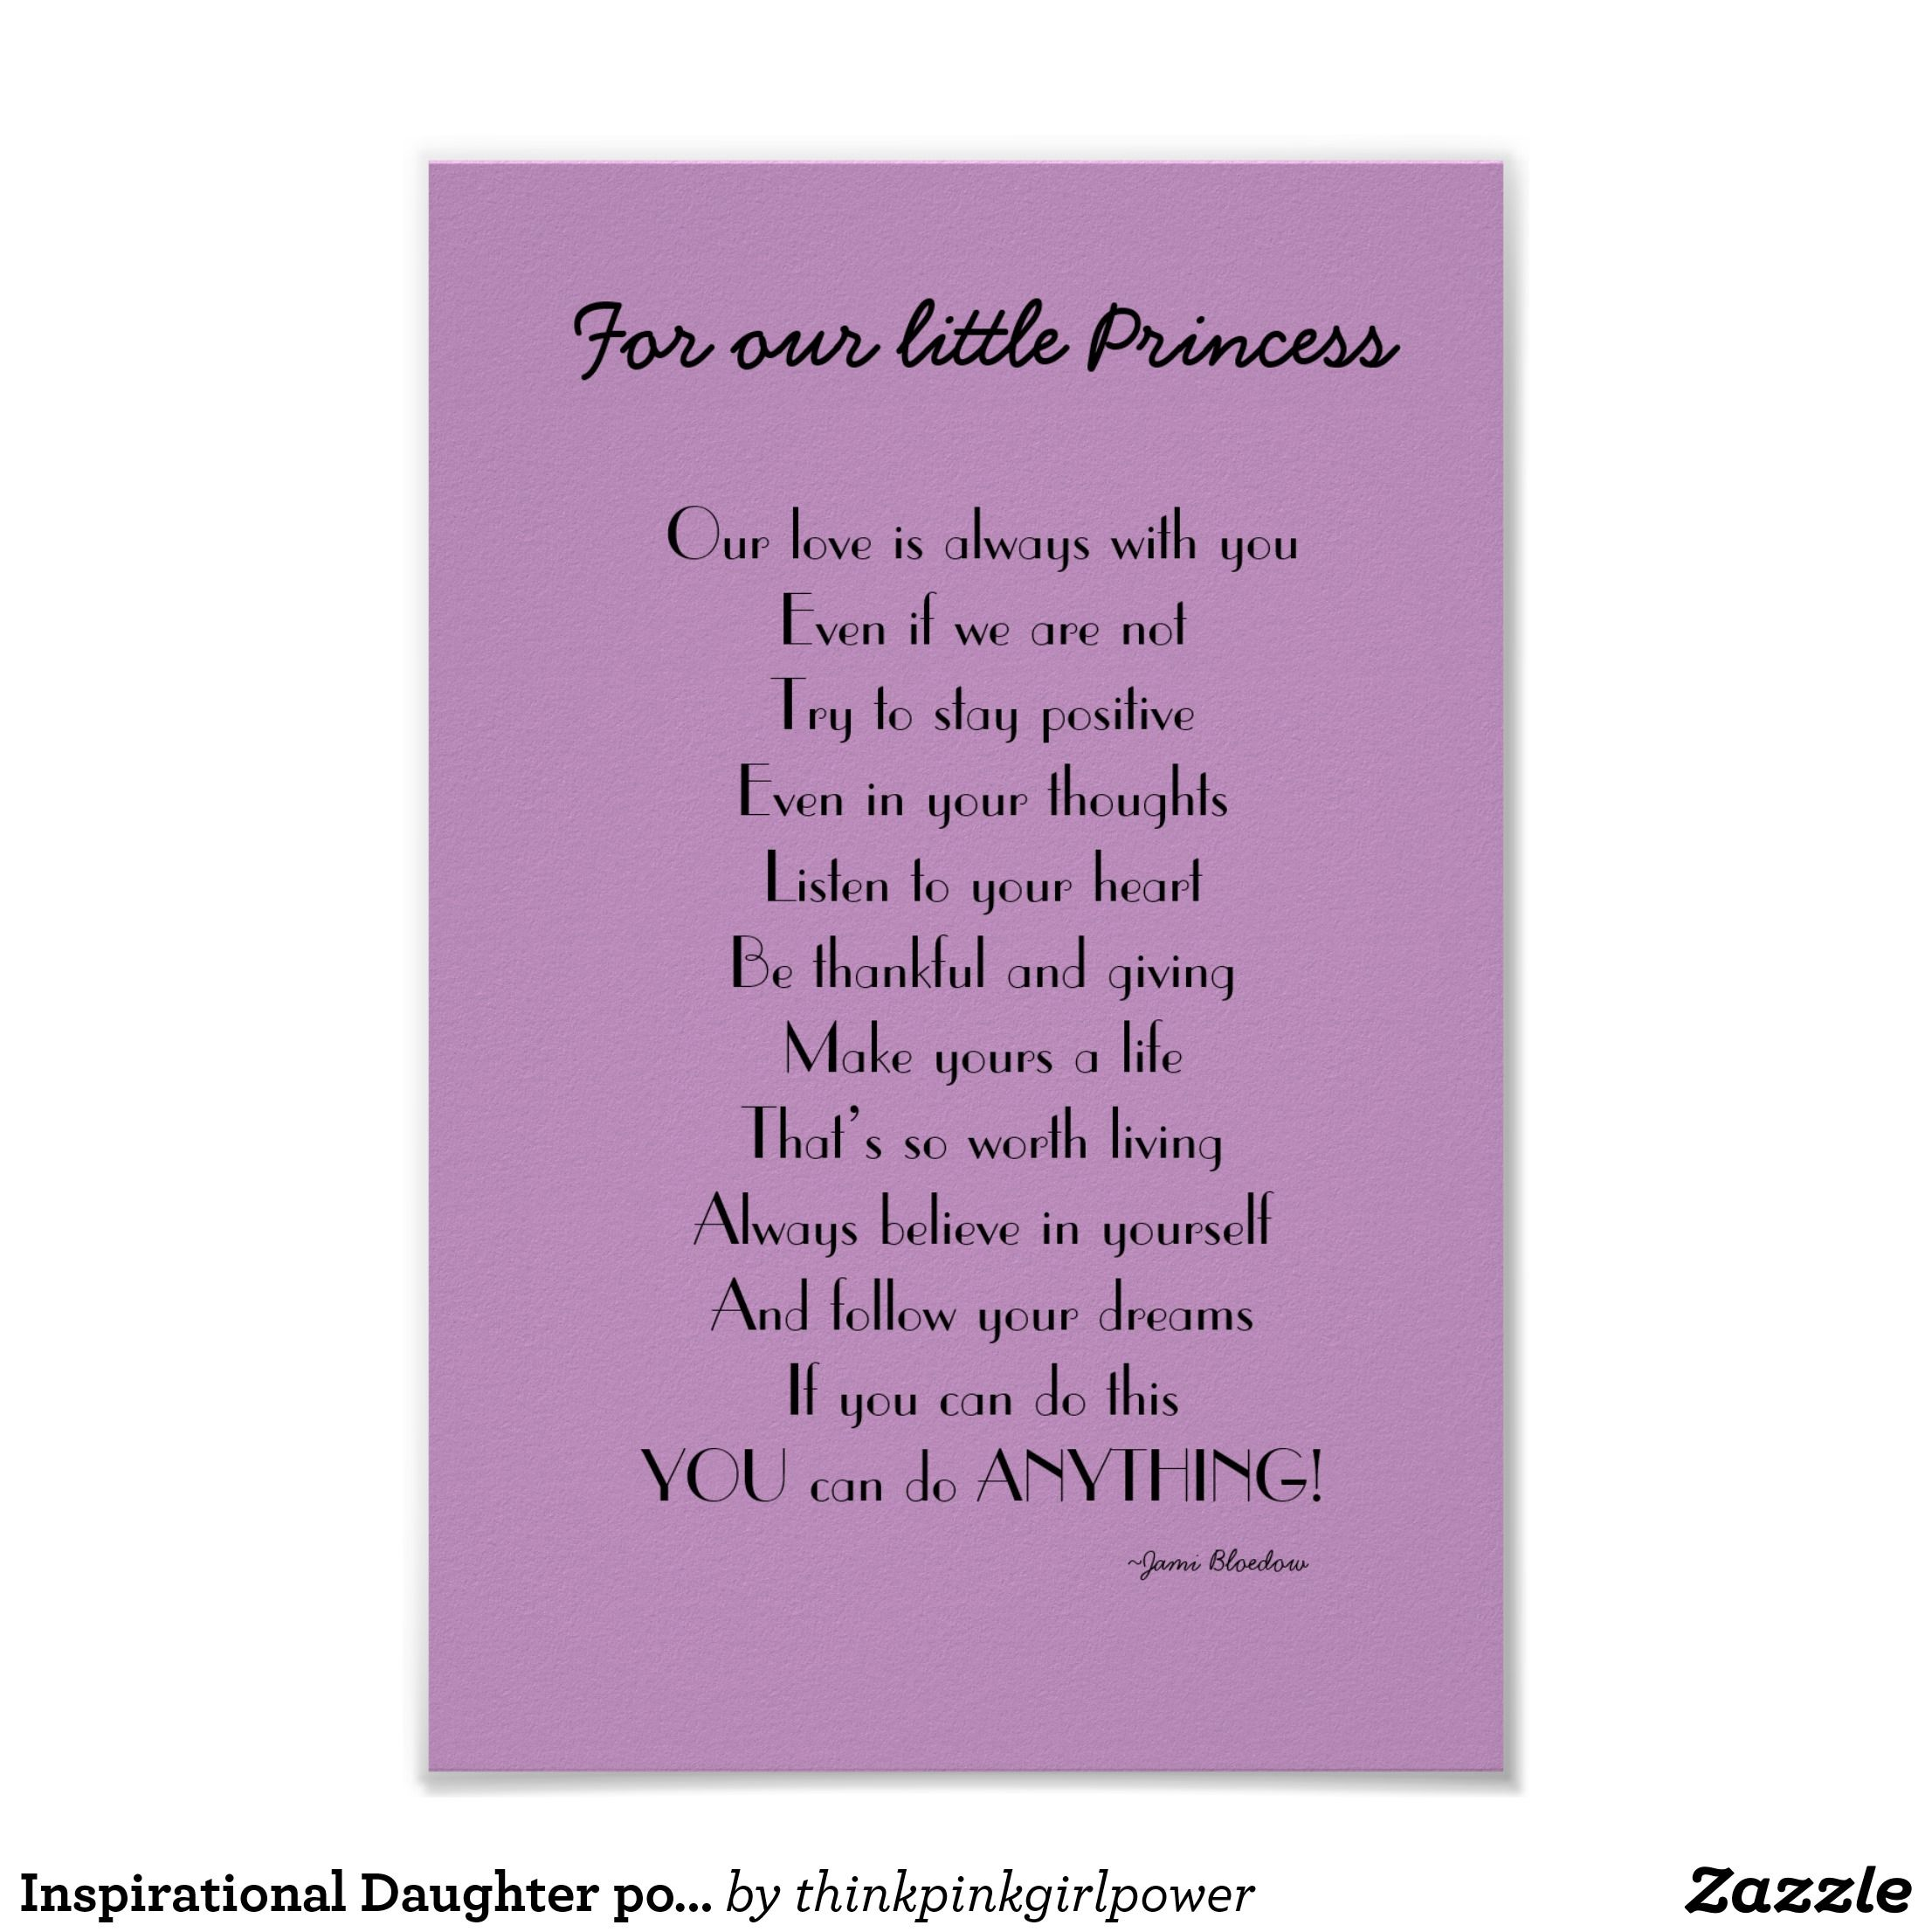 Inspirational Daughter poem from Parents Poster | Zazzle.com ...